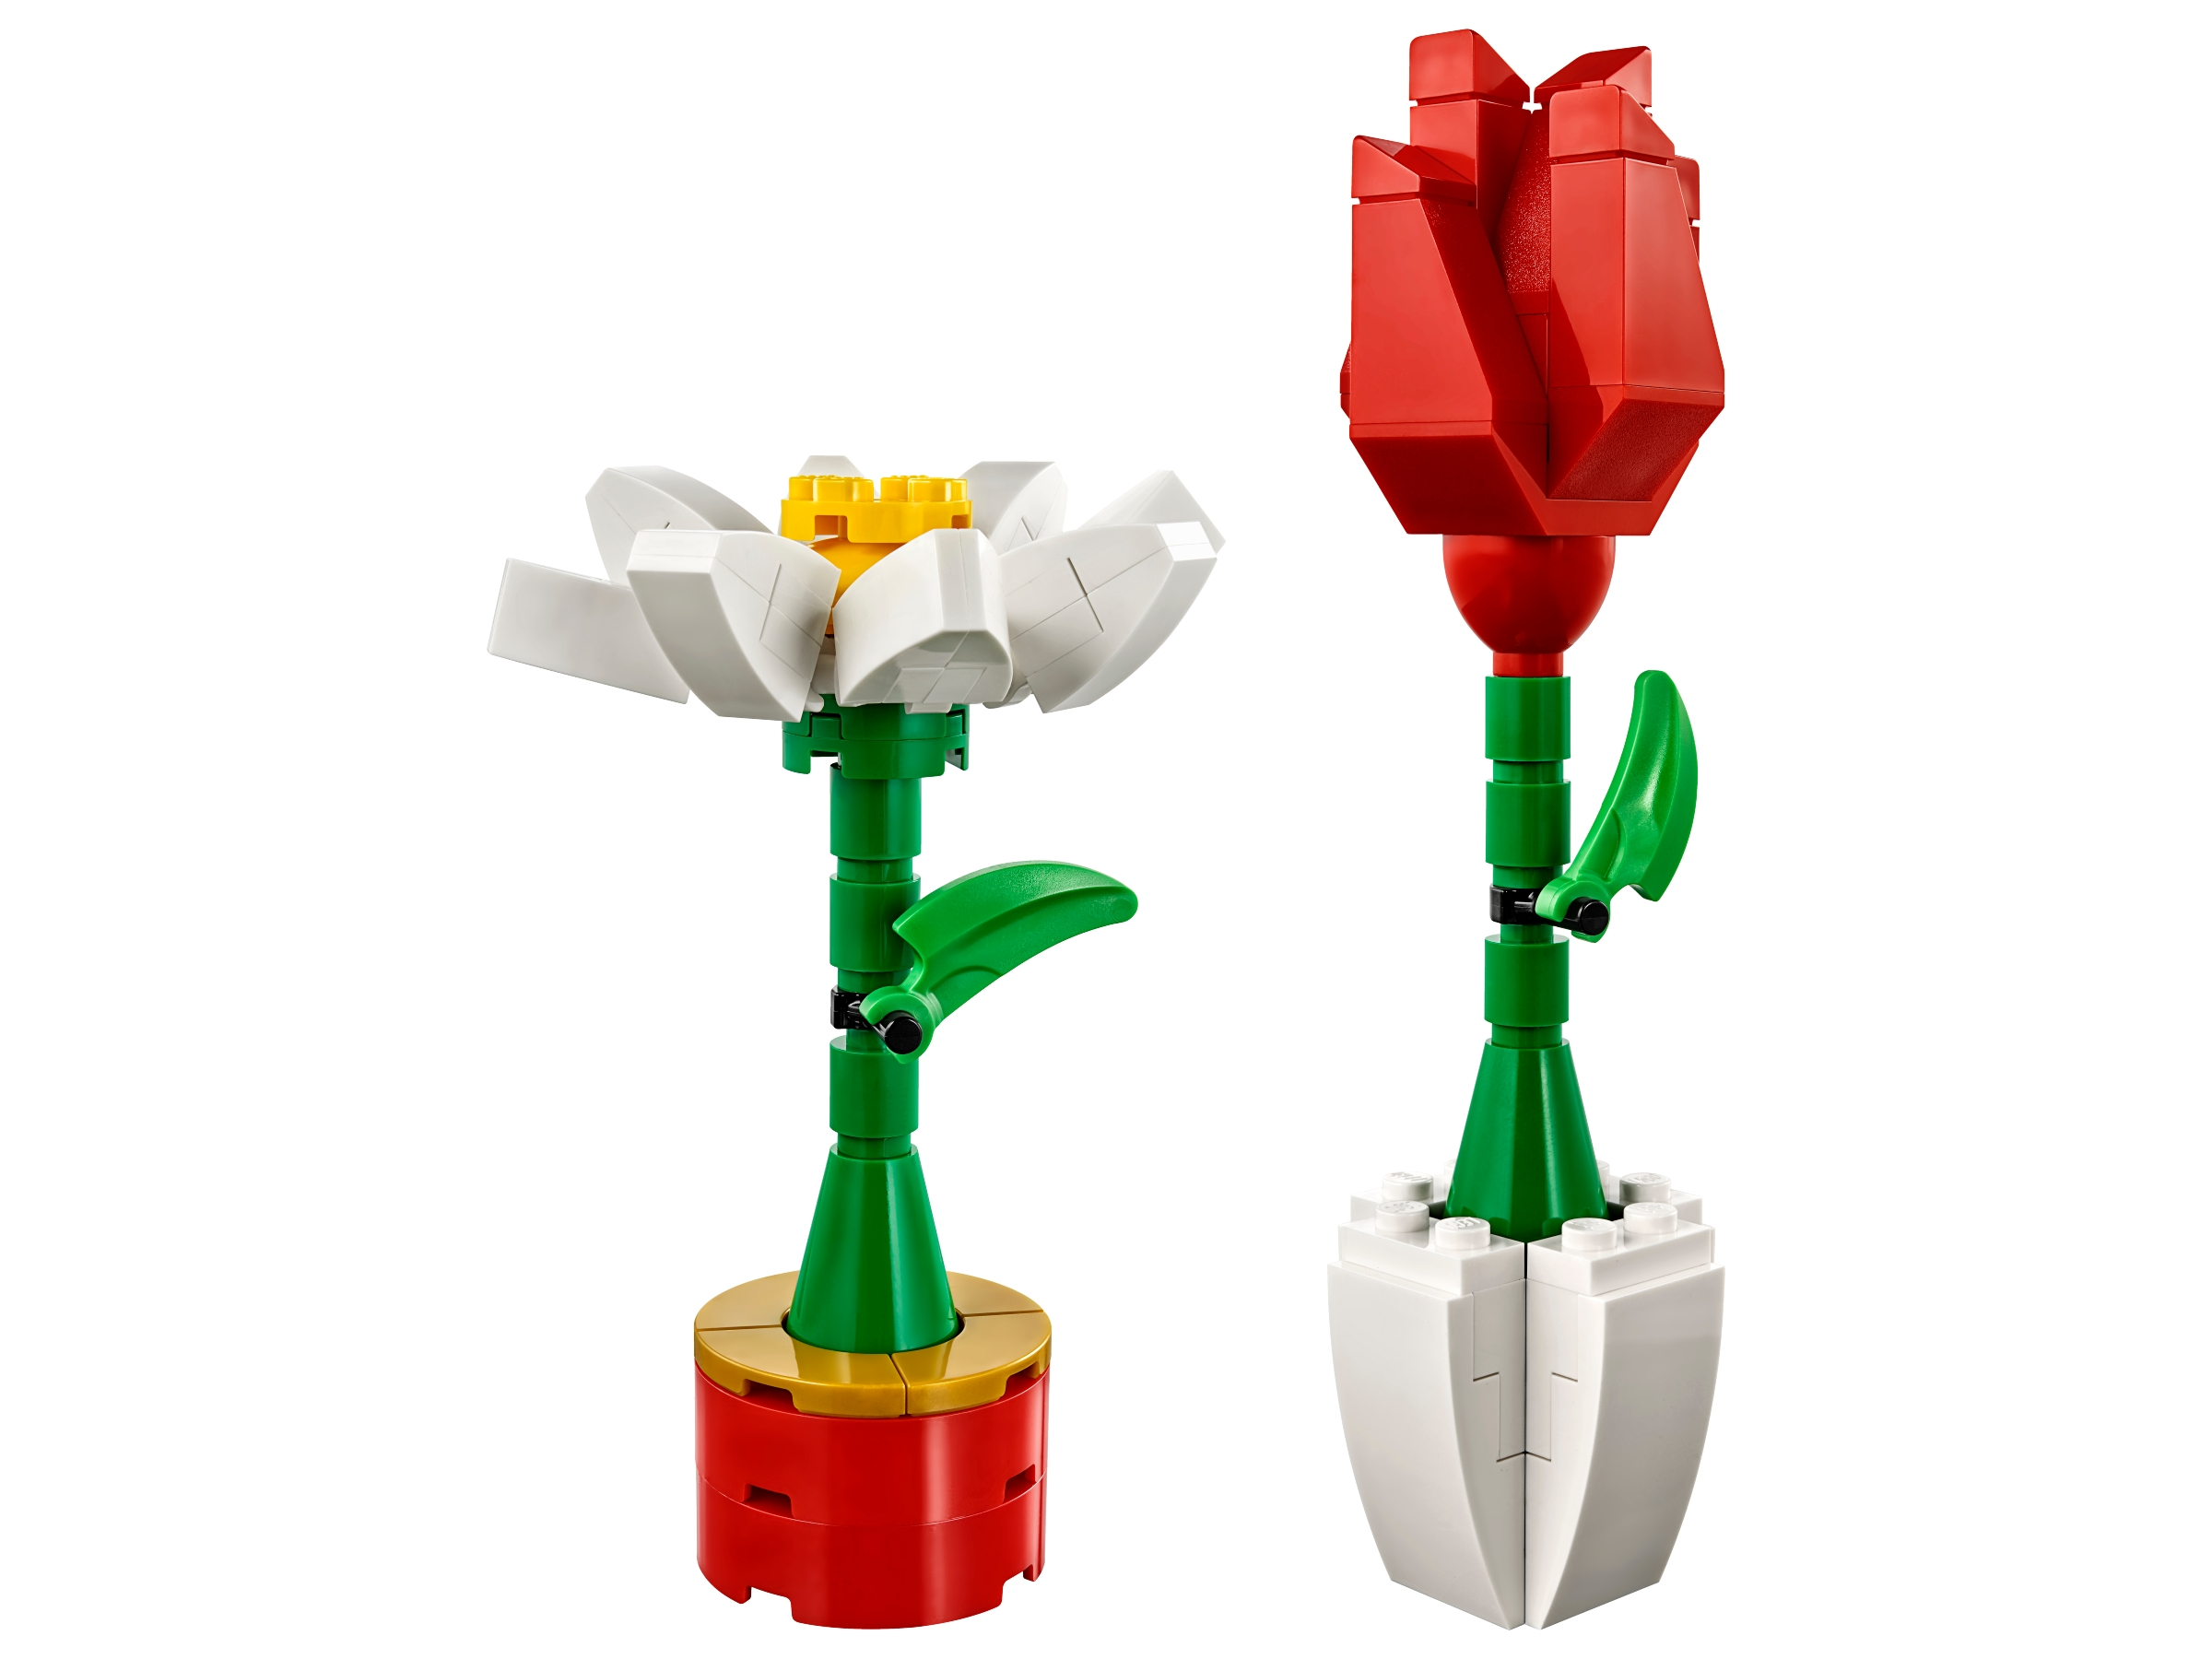 Lego 40187 Valentine Flowers Red Rose White Daisy Display